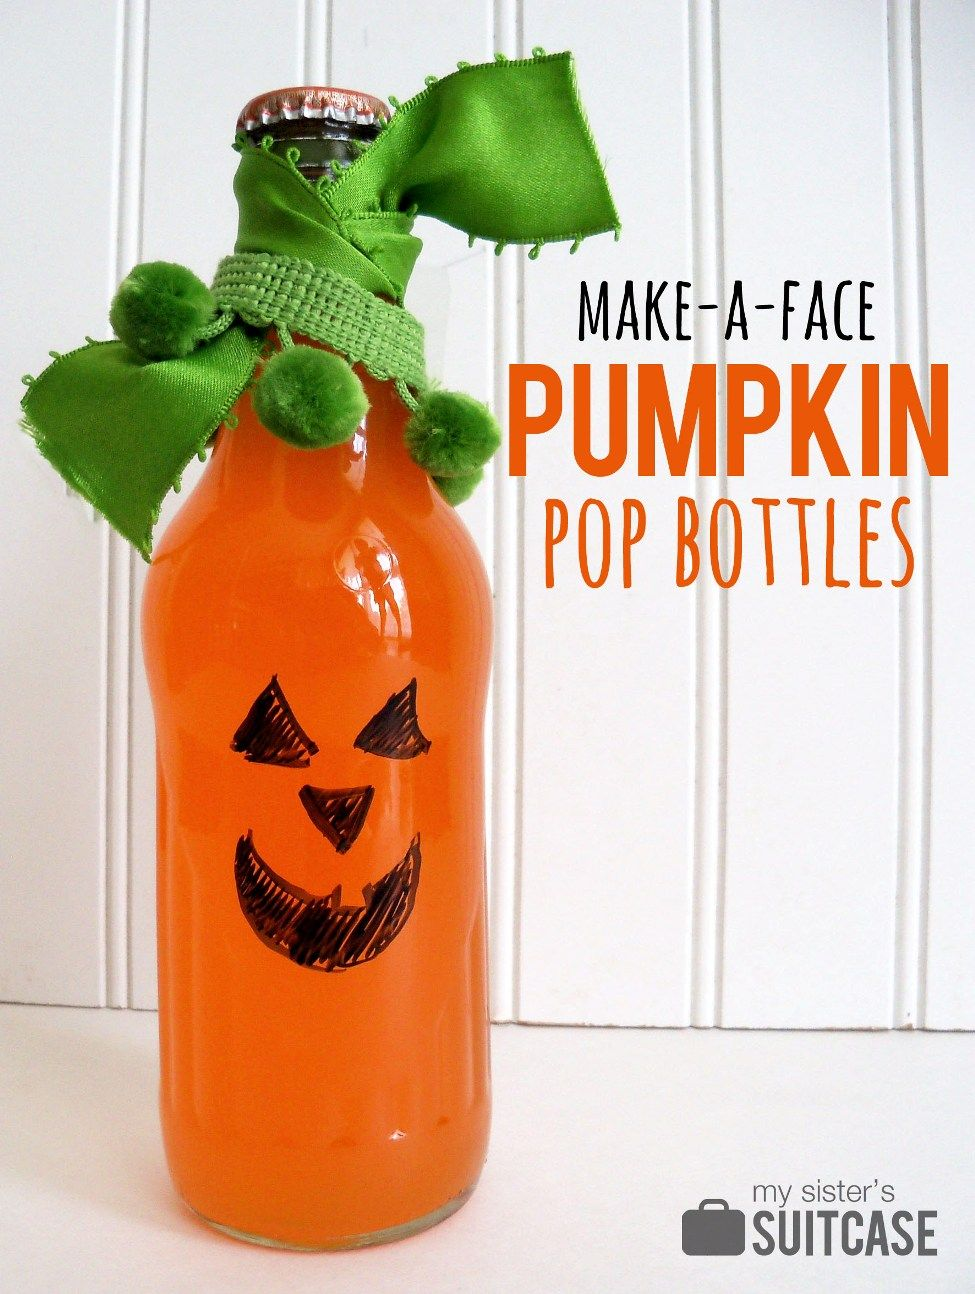 Party guests use markers to decorate their own pumpkin pop bottles! #dryerase #halloween # pumpkin www.sisterssuitcaseblog.com